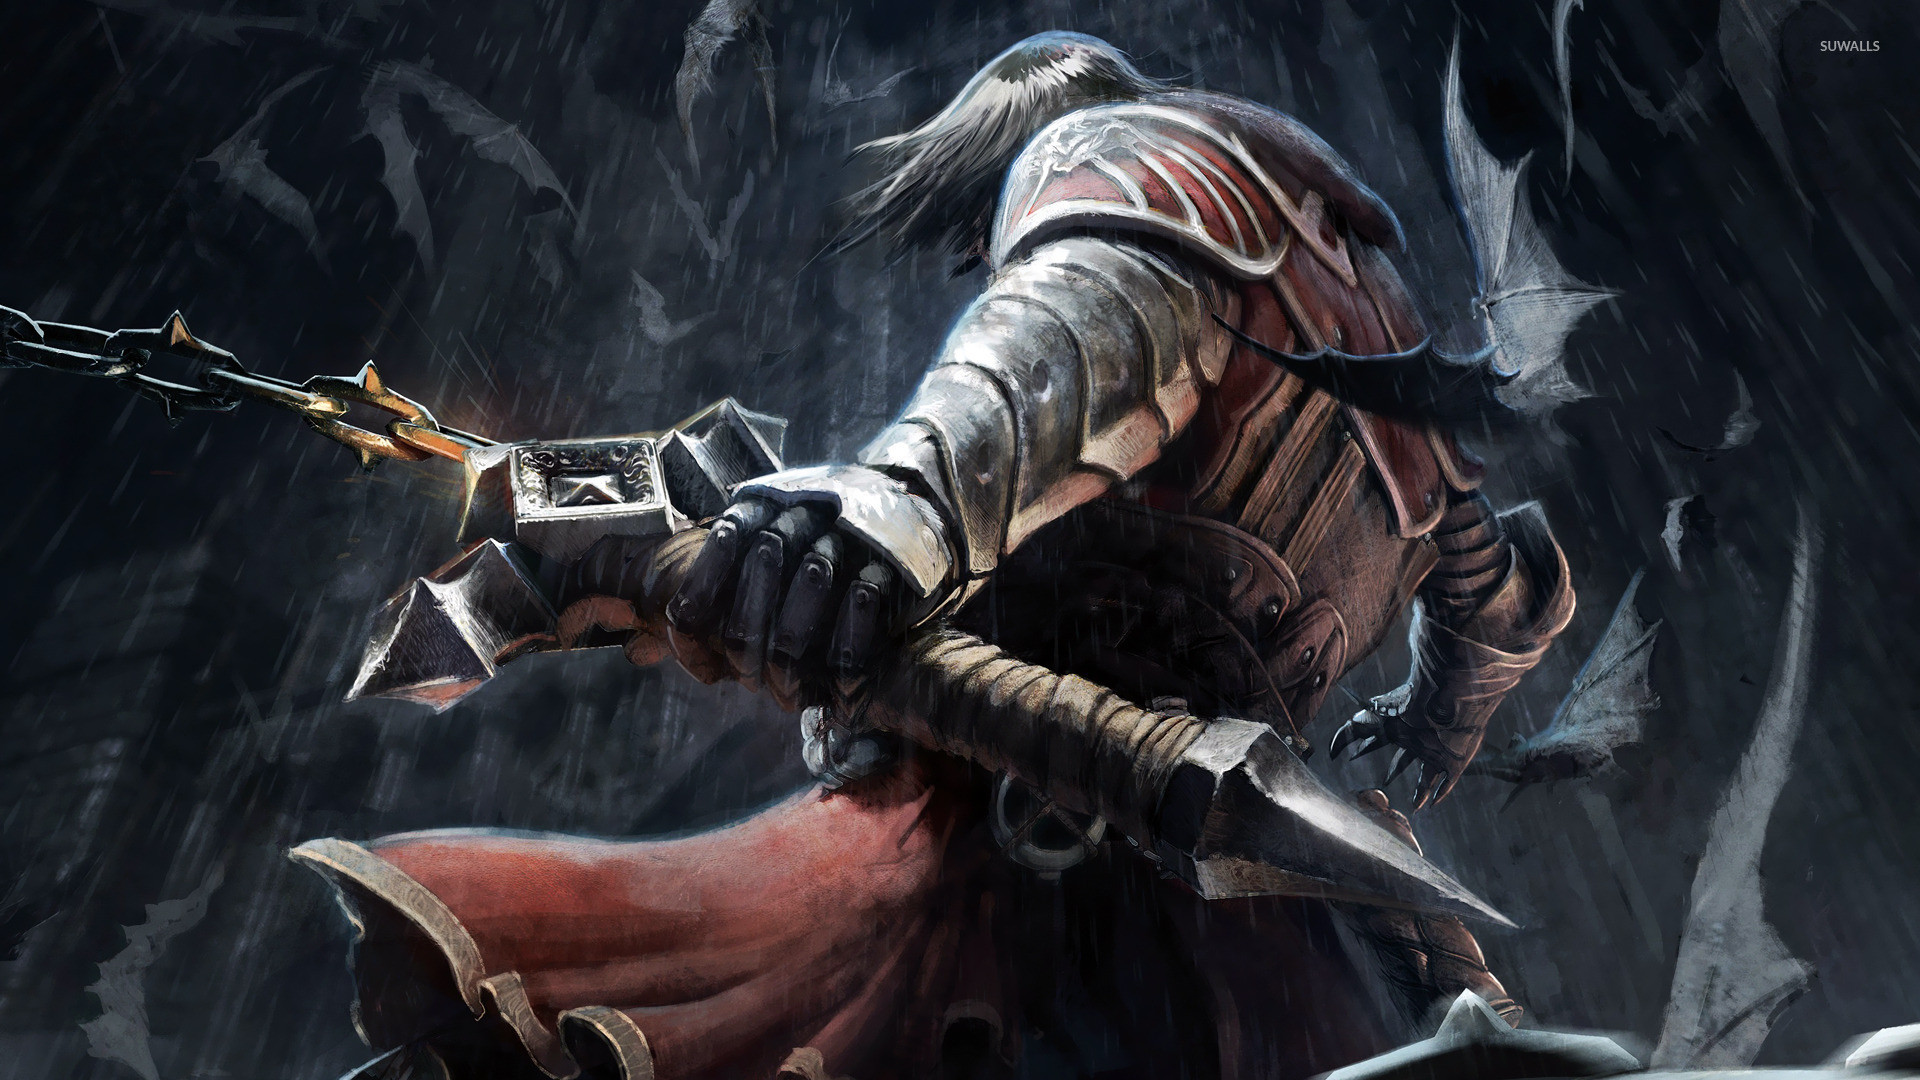 Res: 1920x1080, Castlevania: Lords of Shadow wallpaper